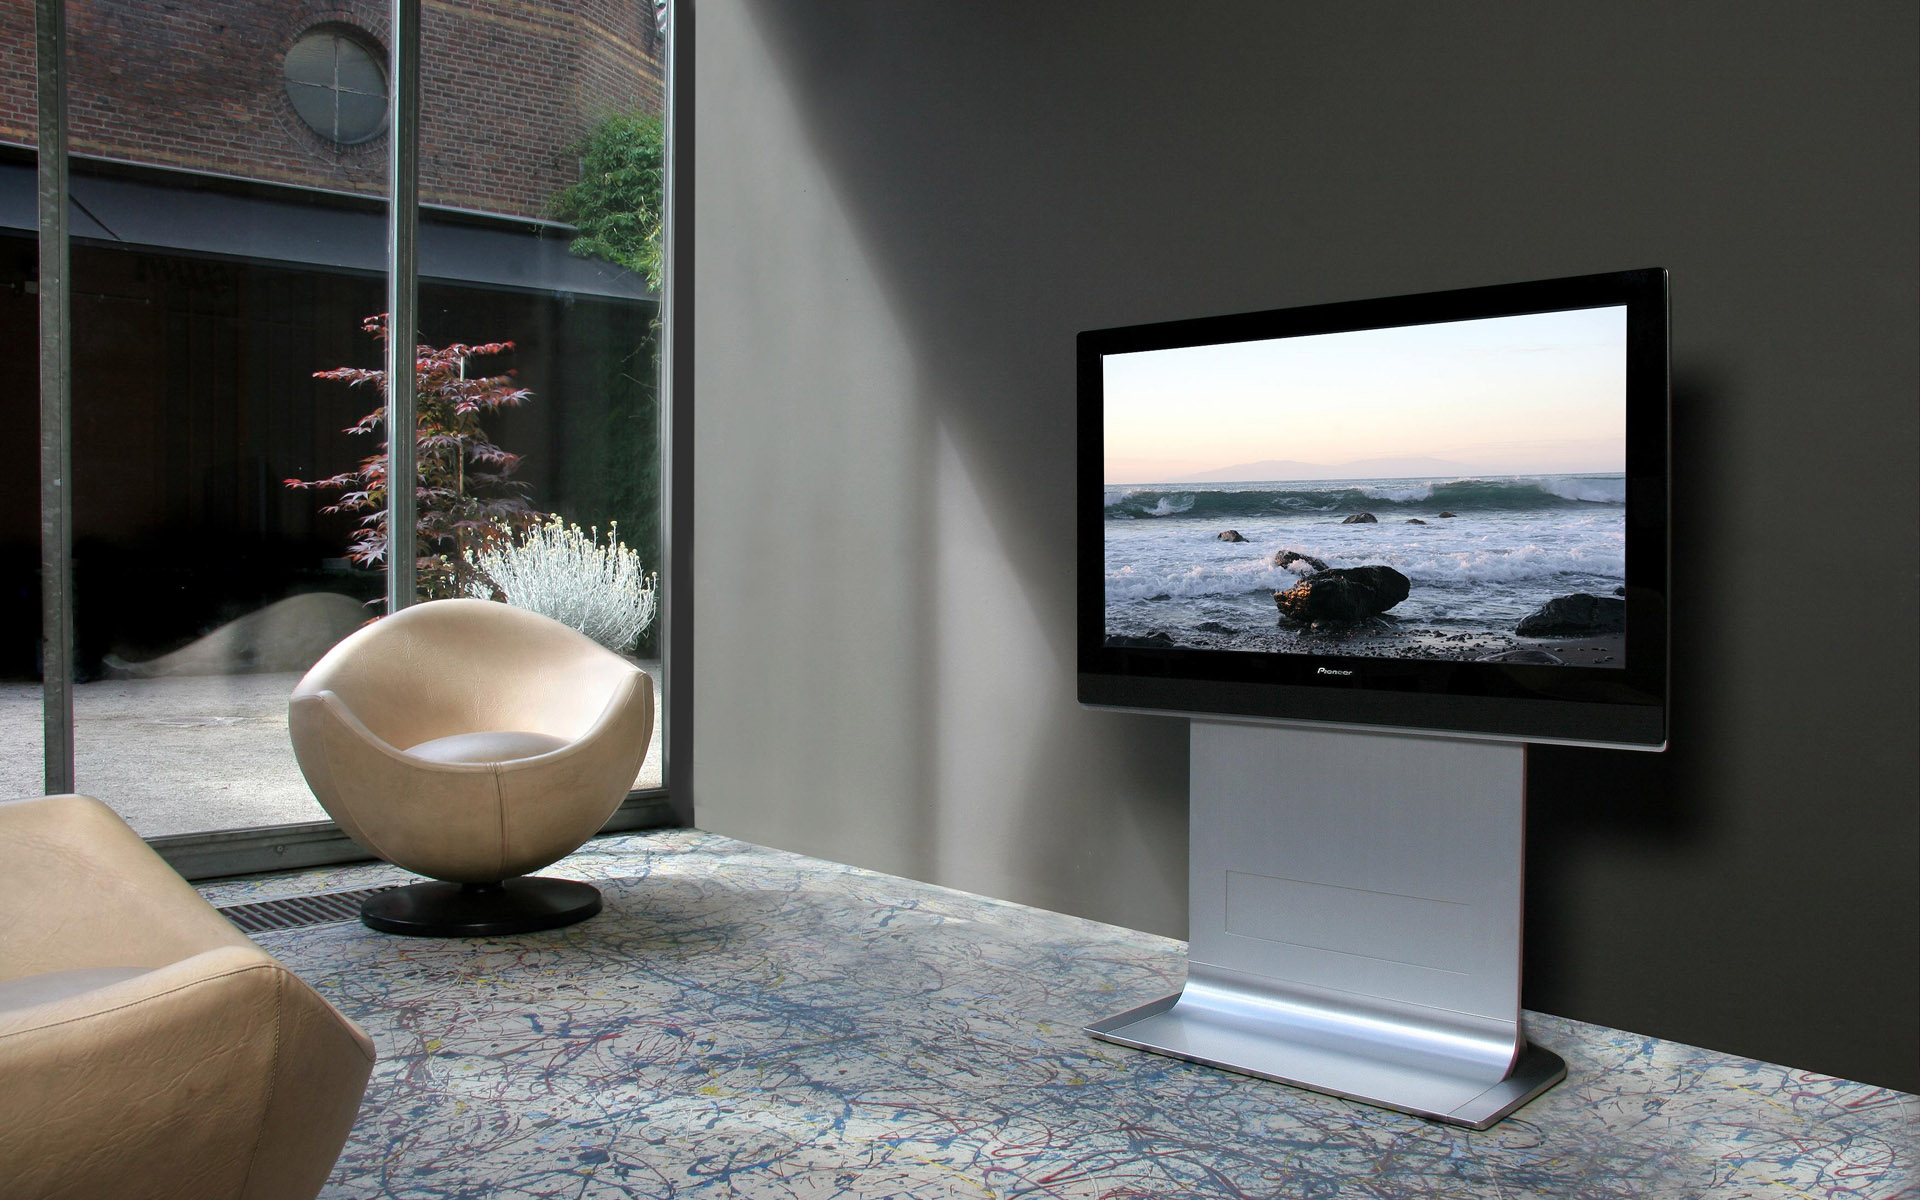 Hd Home Theater 23634 Indoor Home Still Life